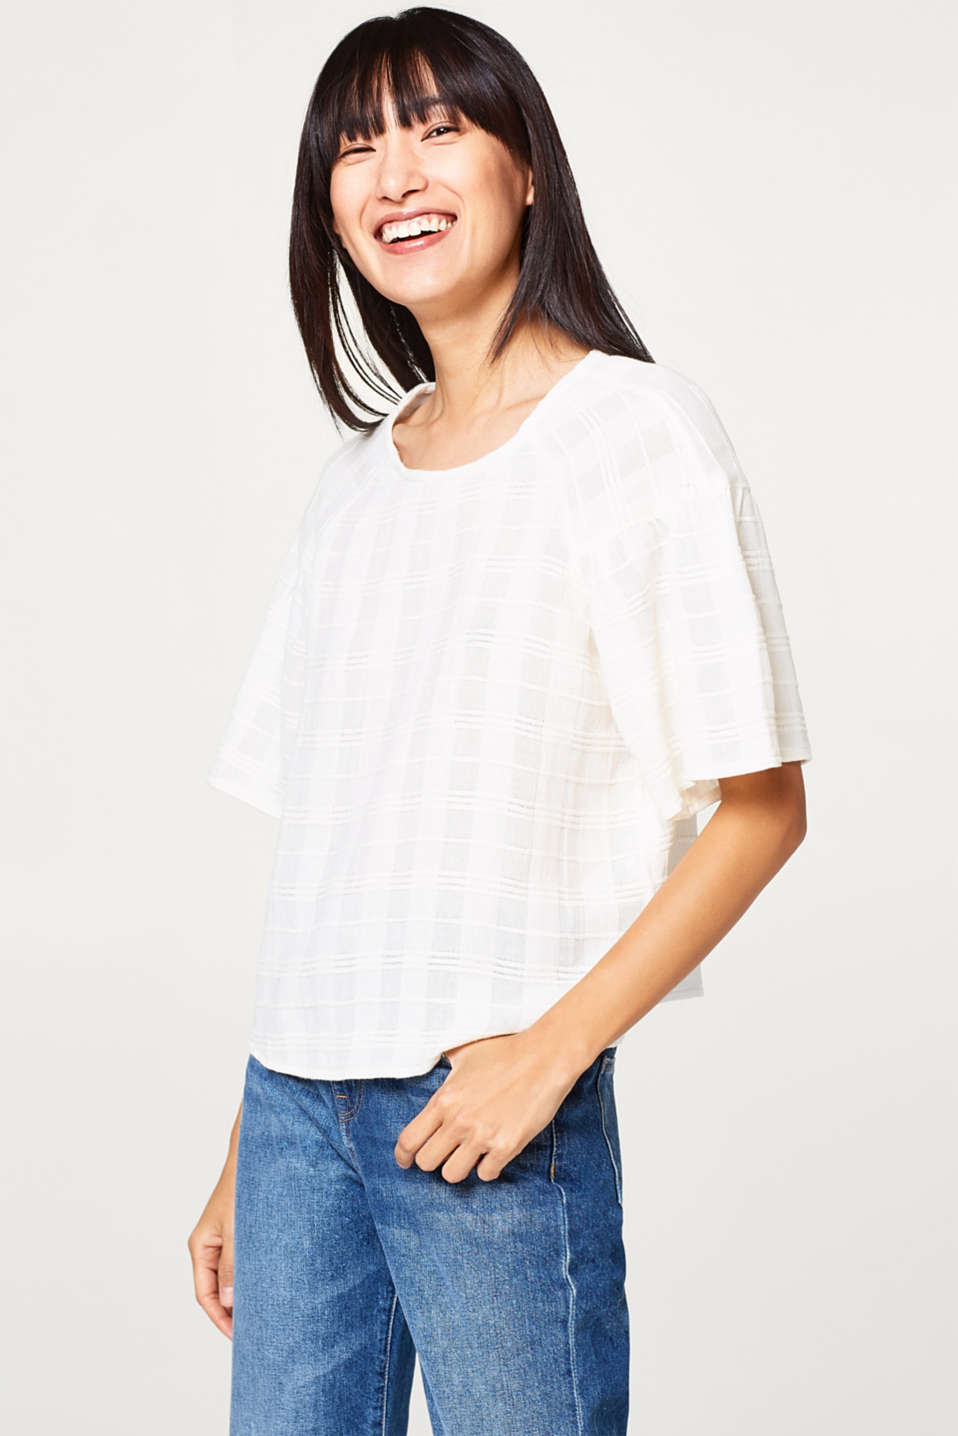 Esprit - Boxy blouse with frilled sleeves, 100% cotton